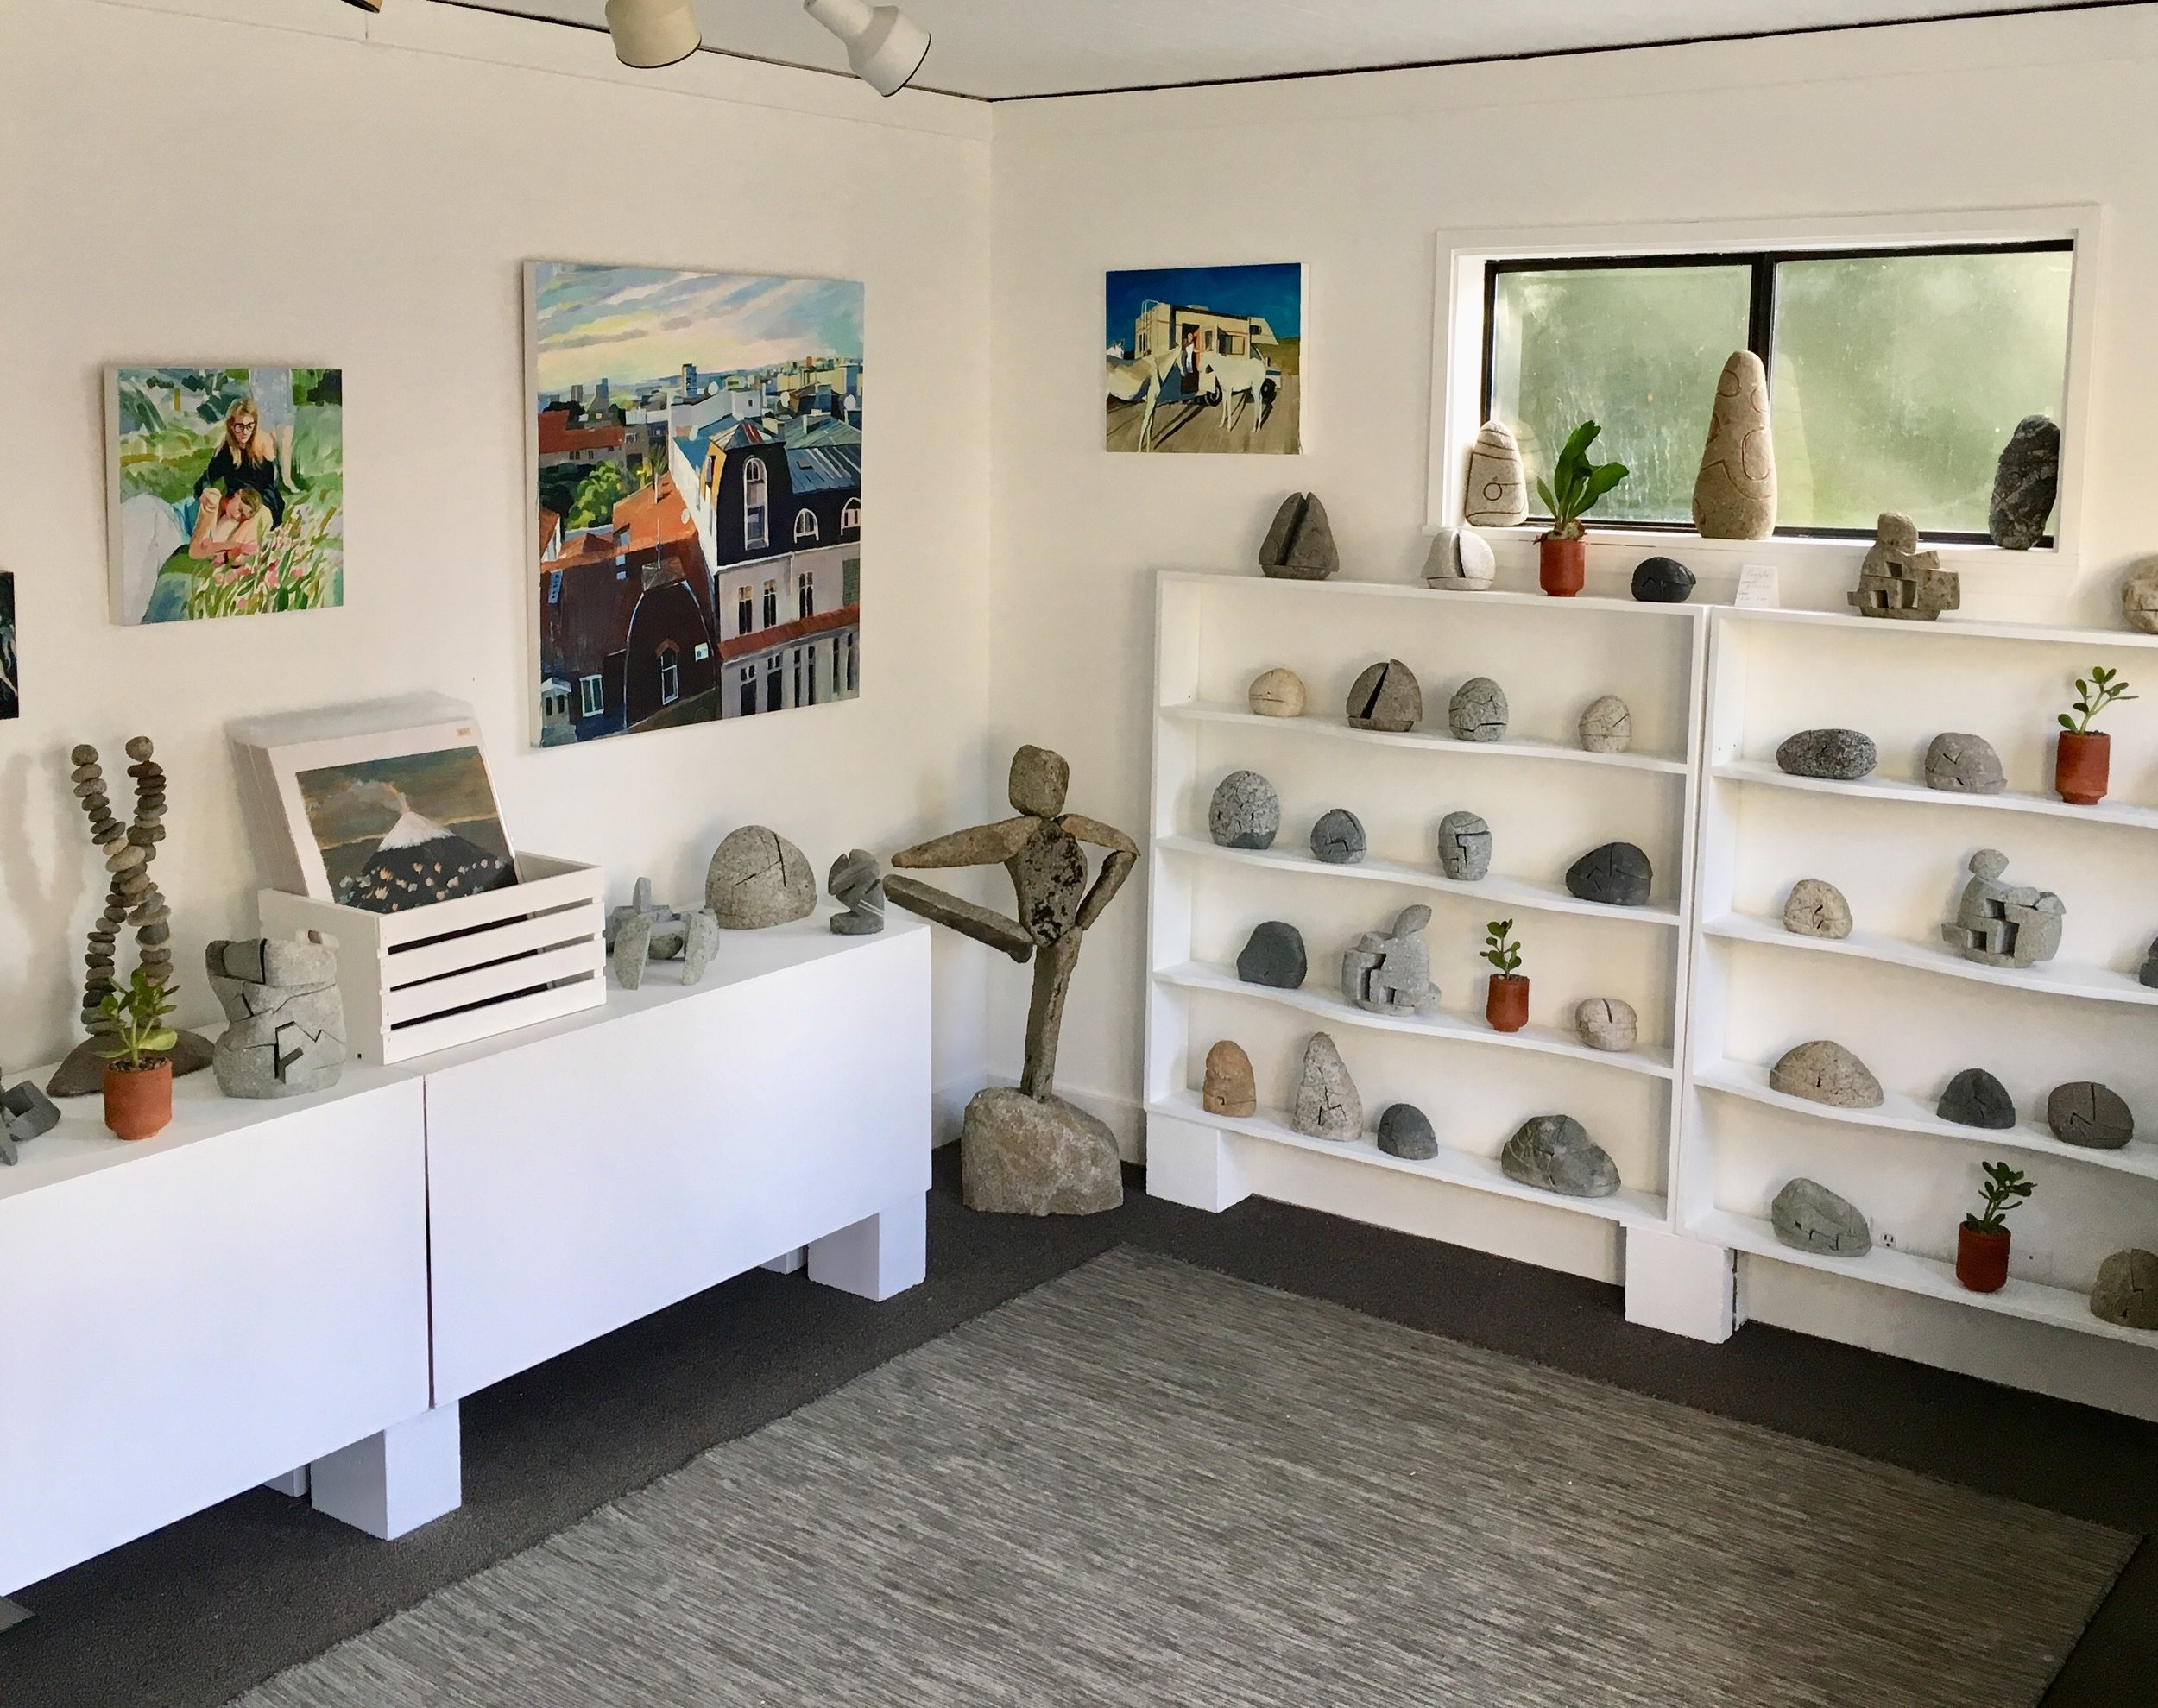 Small World Art Gallery is a tiny art gallery located on Bainbridge Island. Erica has collaborated with local stone sculptor Ethan Currier to display their work at this location from fall of 2018 through 2019.